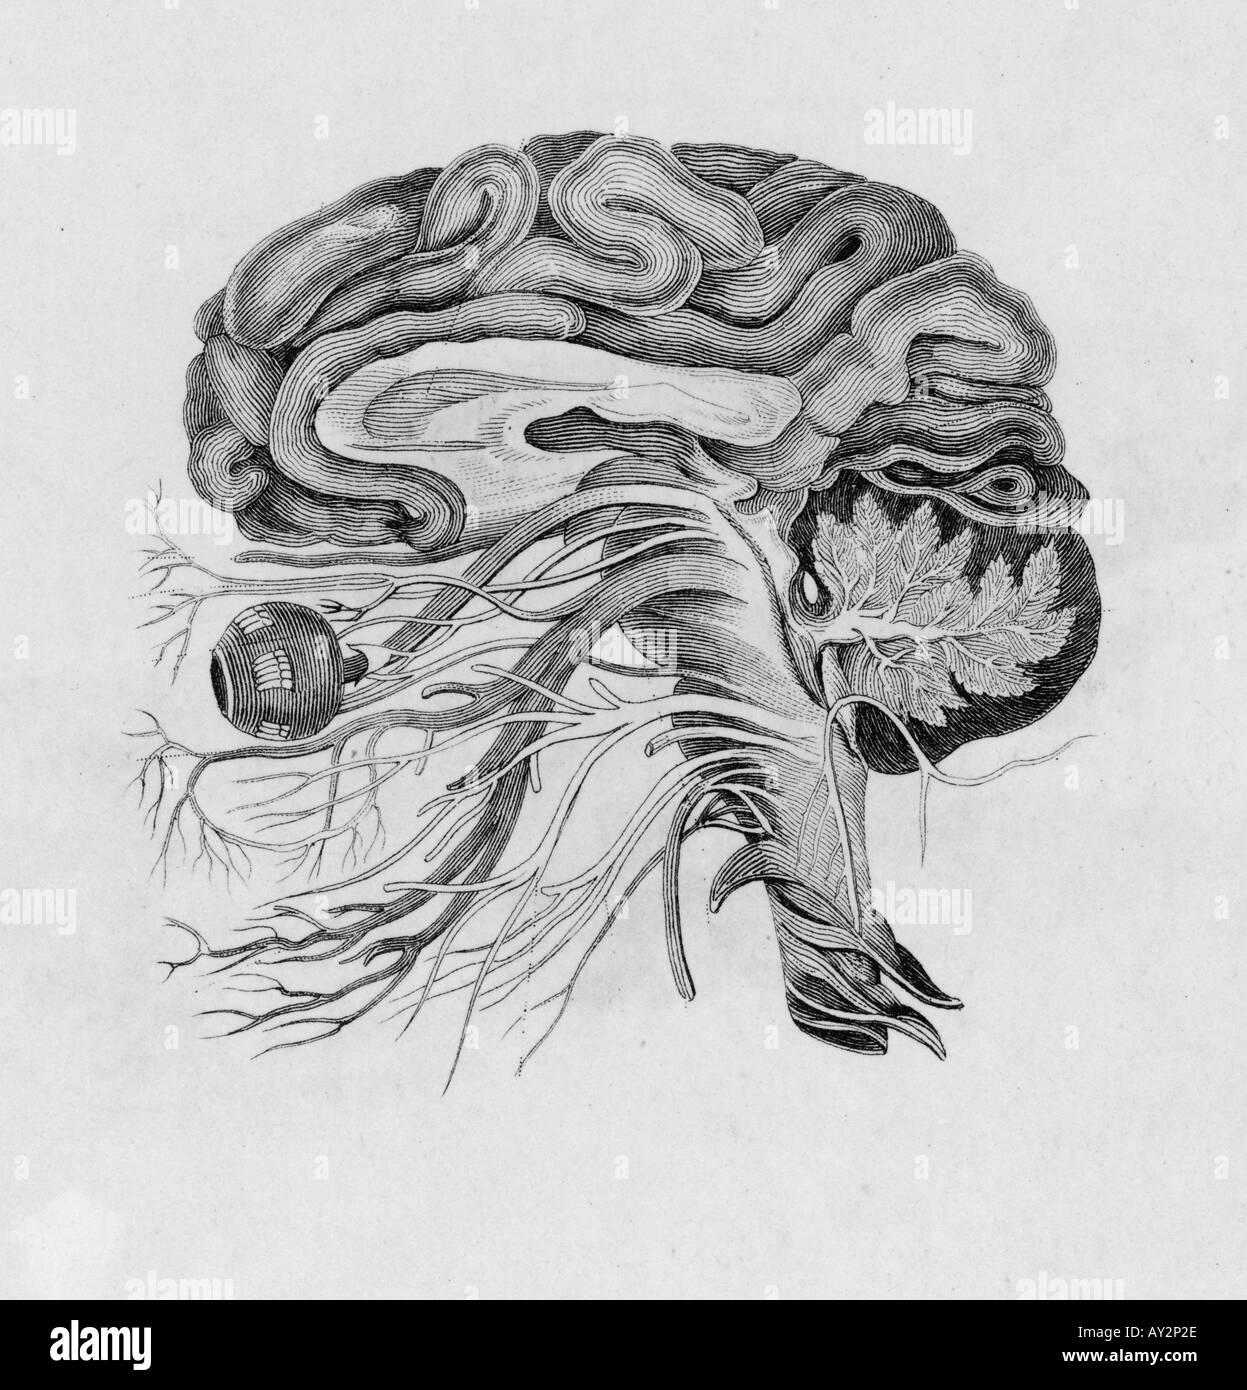 Anatomy Brain Side View Black and White Stock Photos & Images - Alamy